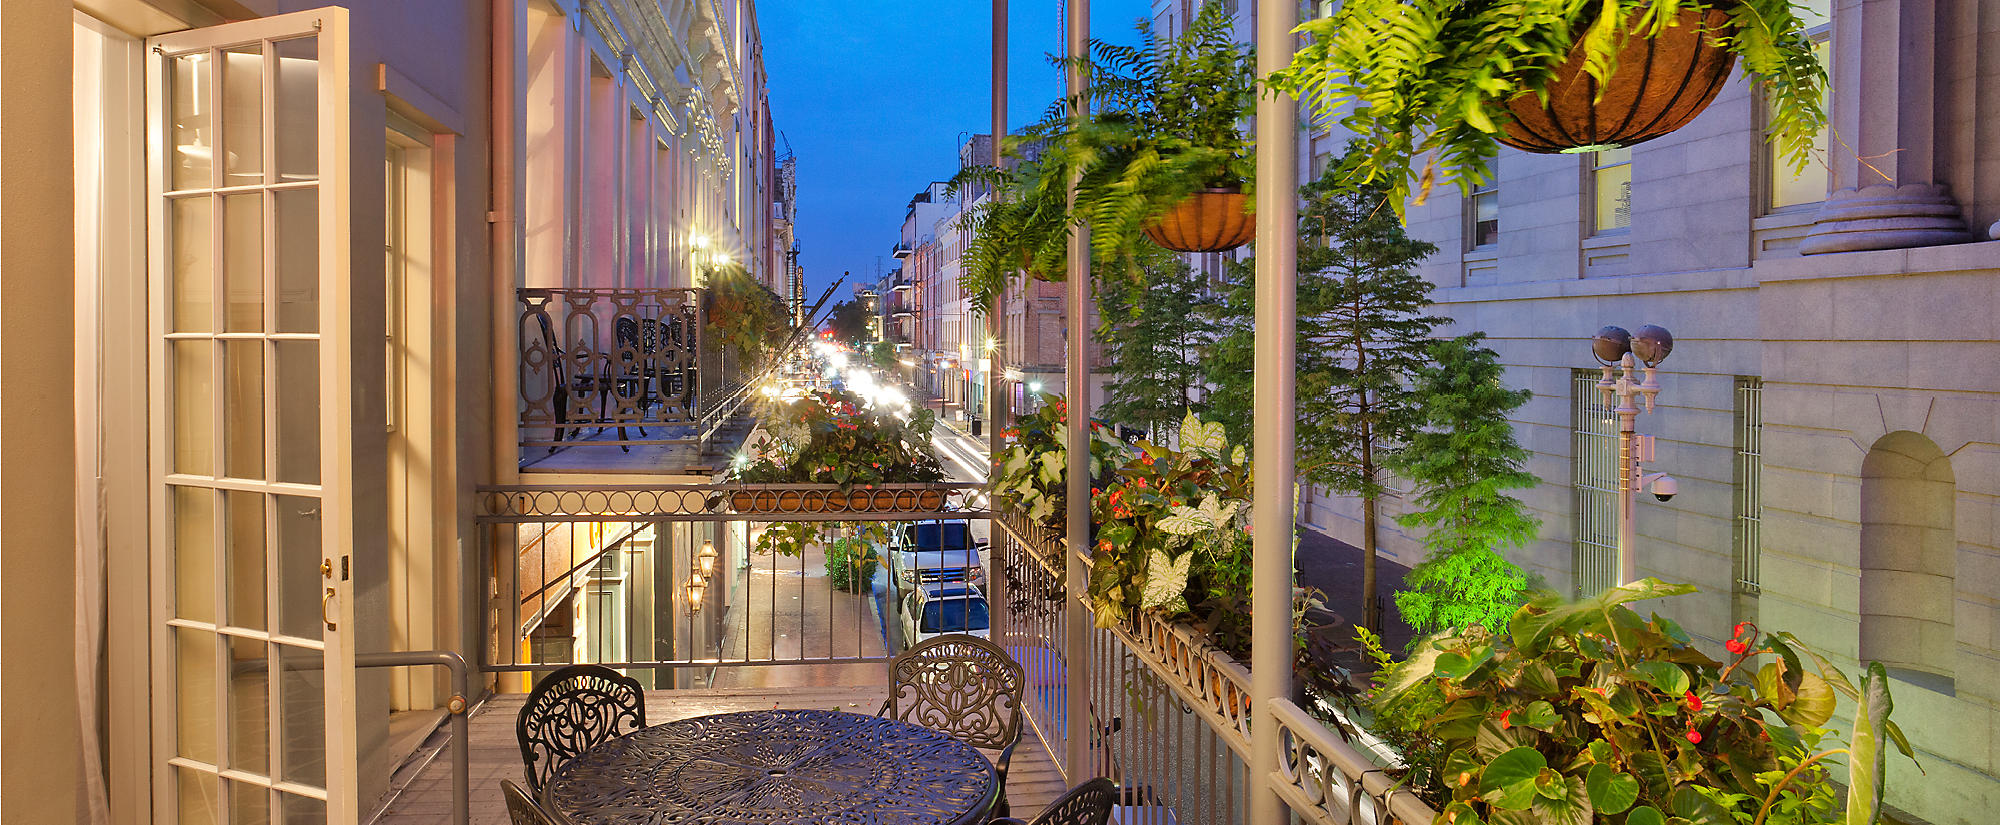 Vacation In New Orleans, Louisiana